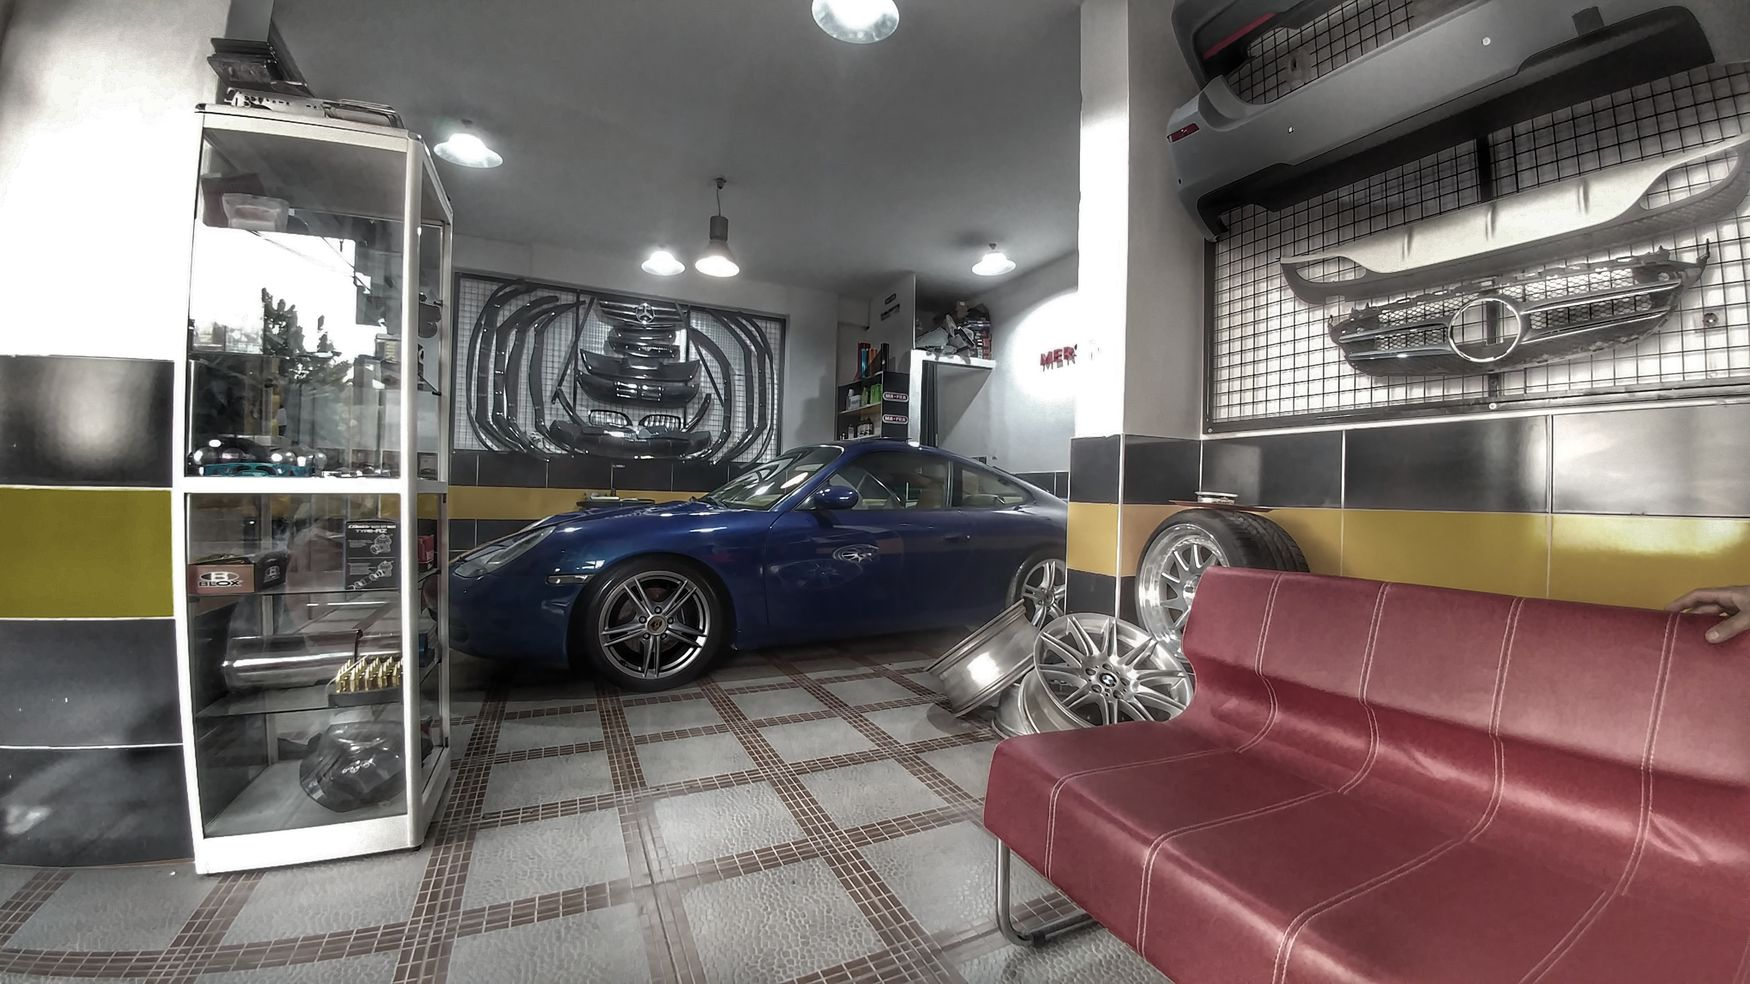 Porsche Carrera4s blue Garage Tuninglife Workshop Tuning Modification